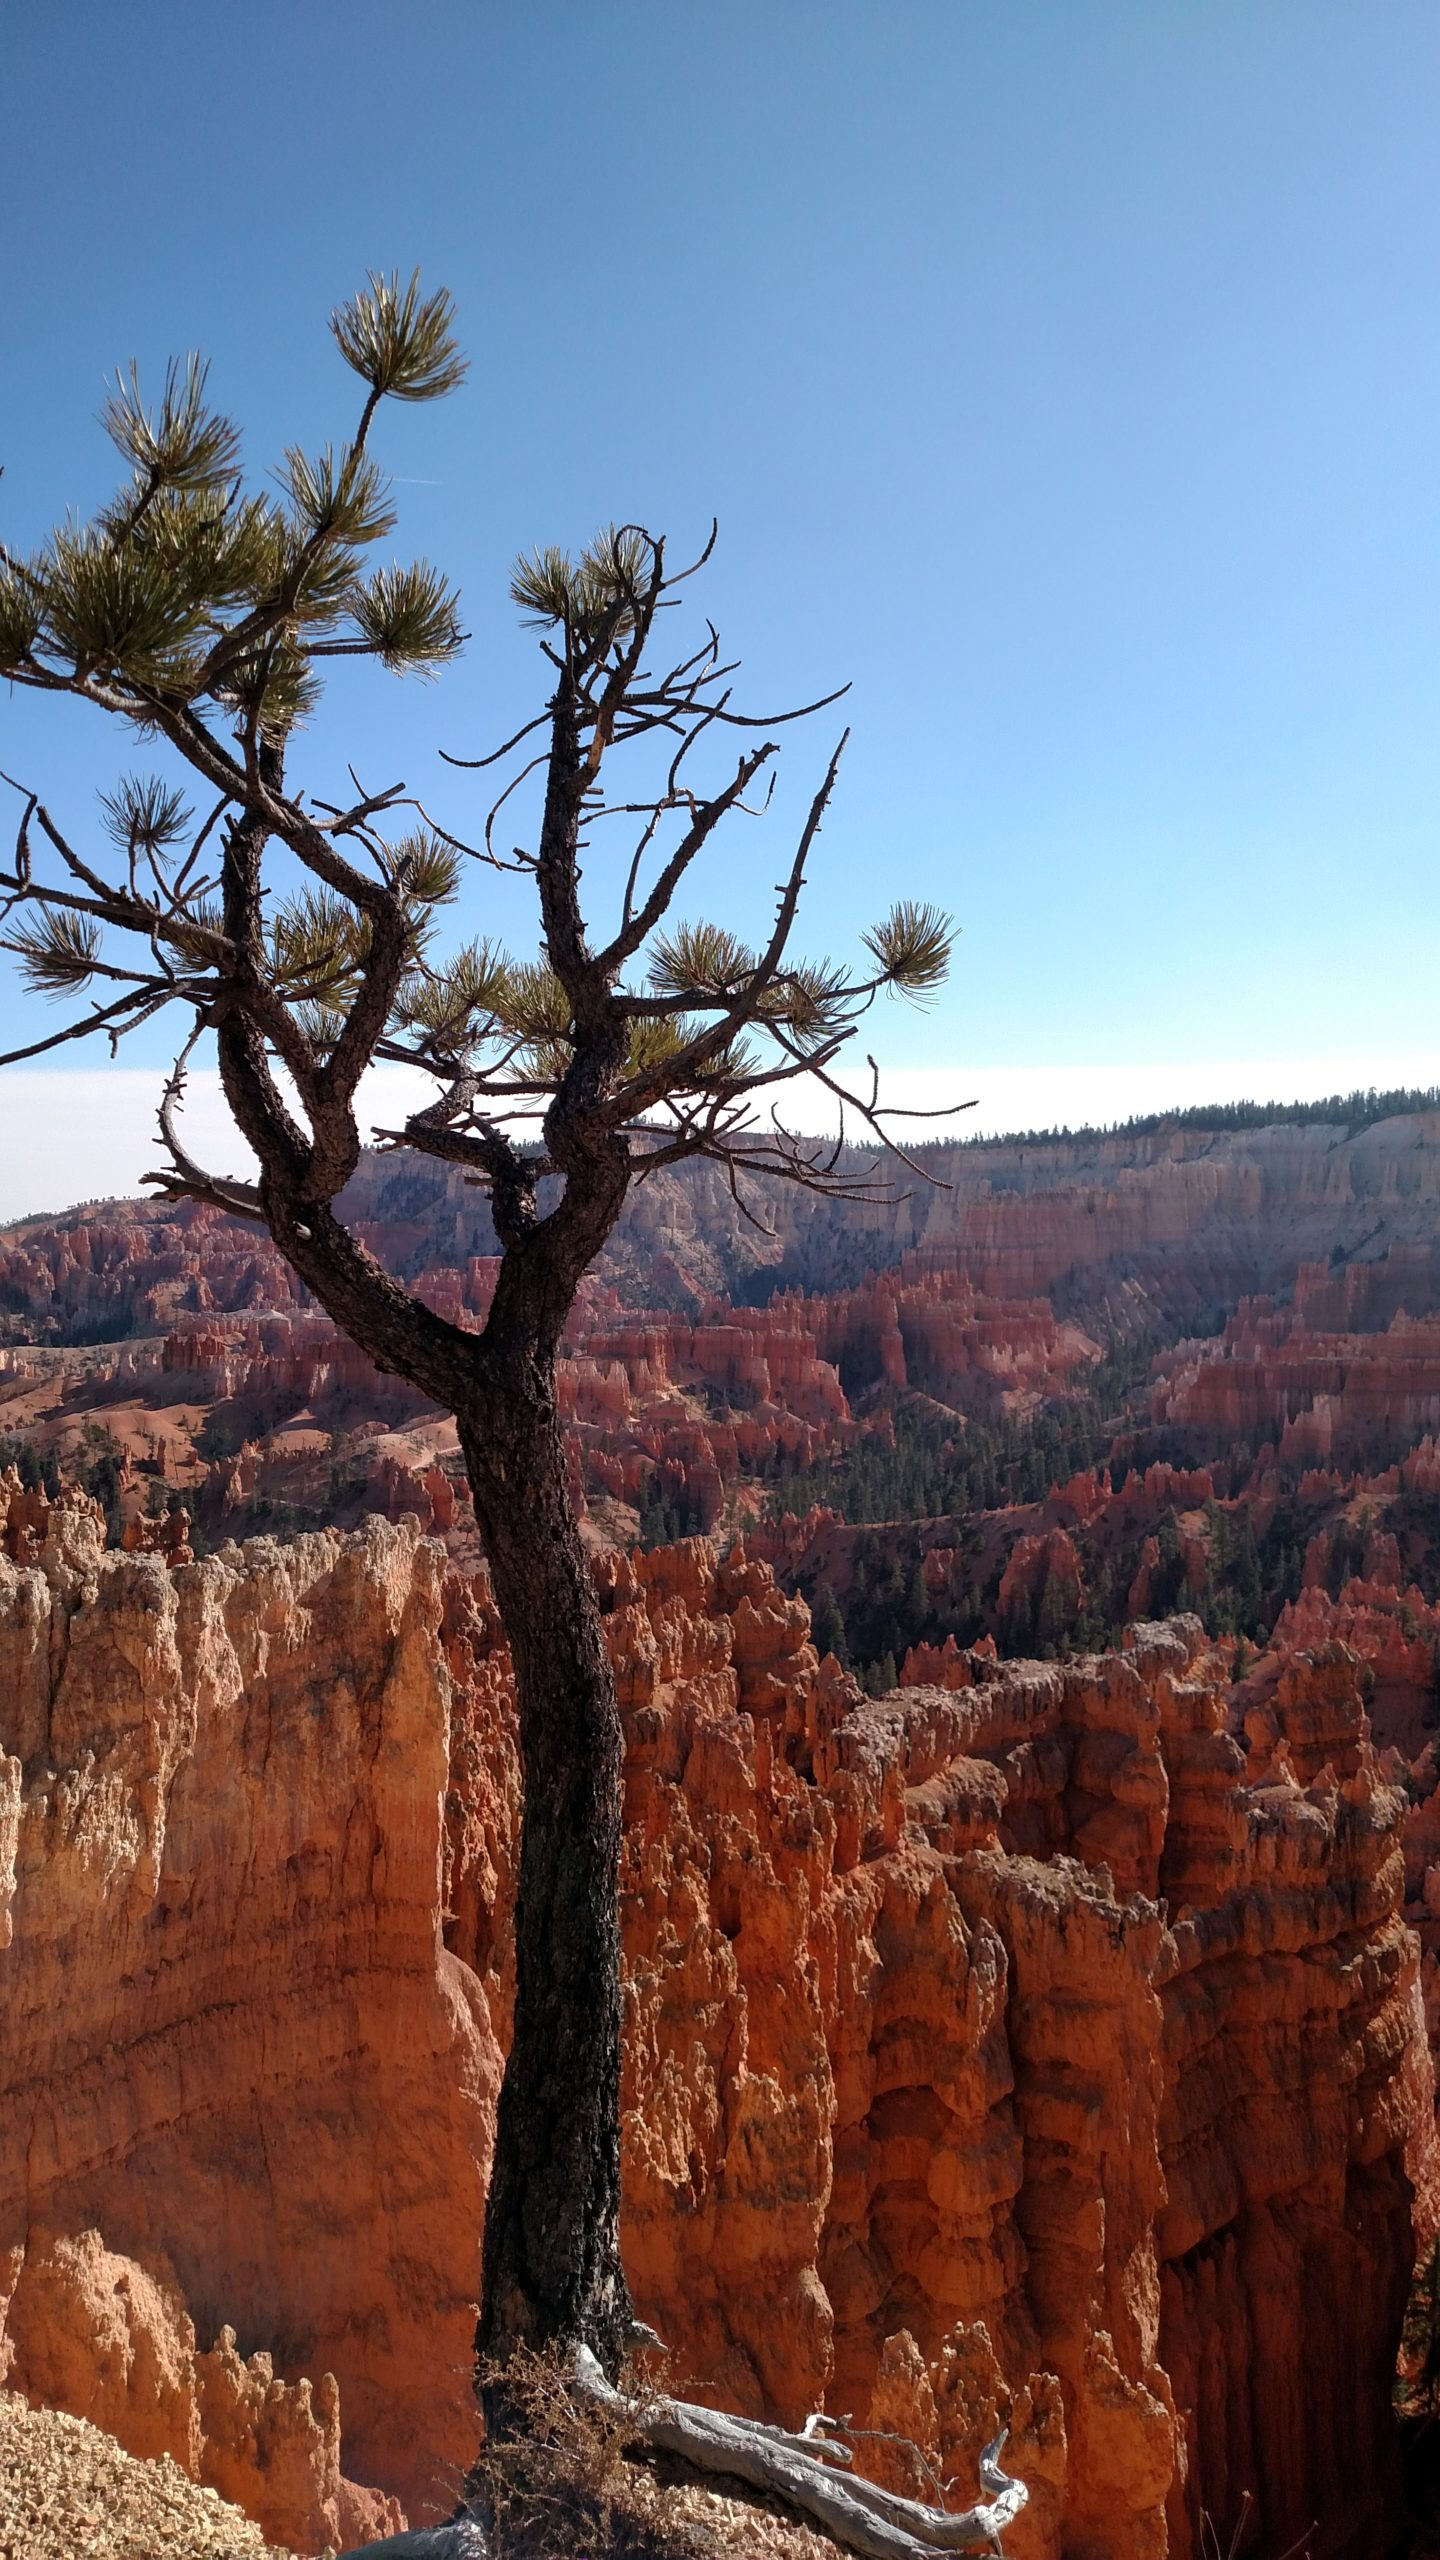 Bryce Canyon in Utah with tree in foreground at edge of cliff and orange rock formations in background